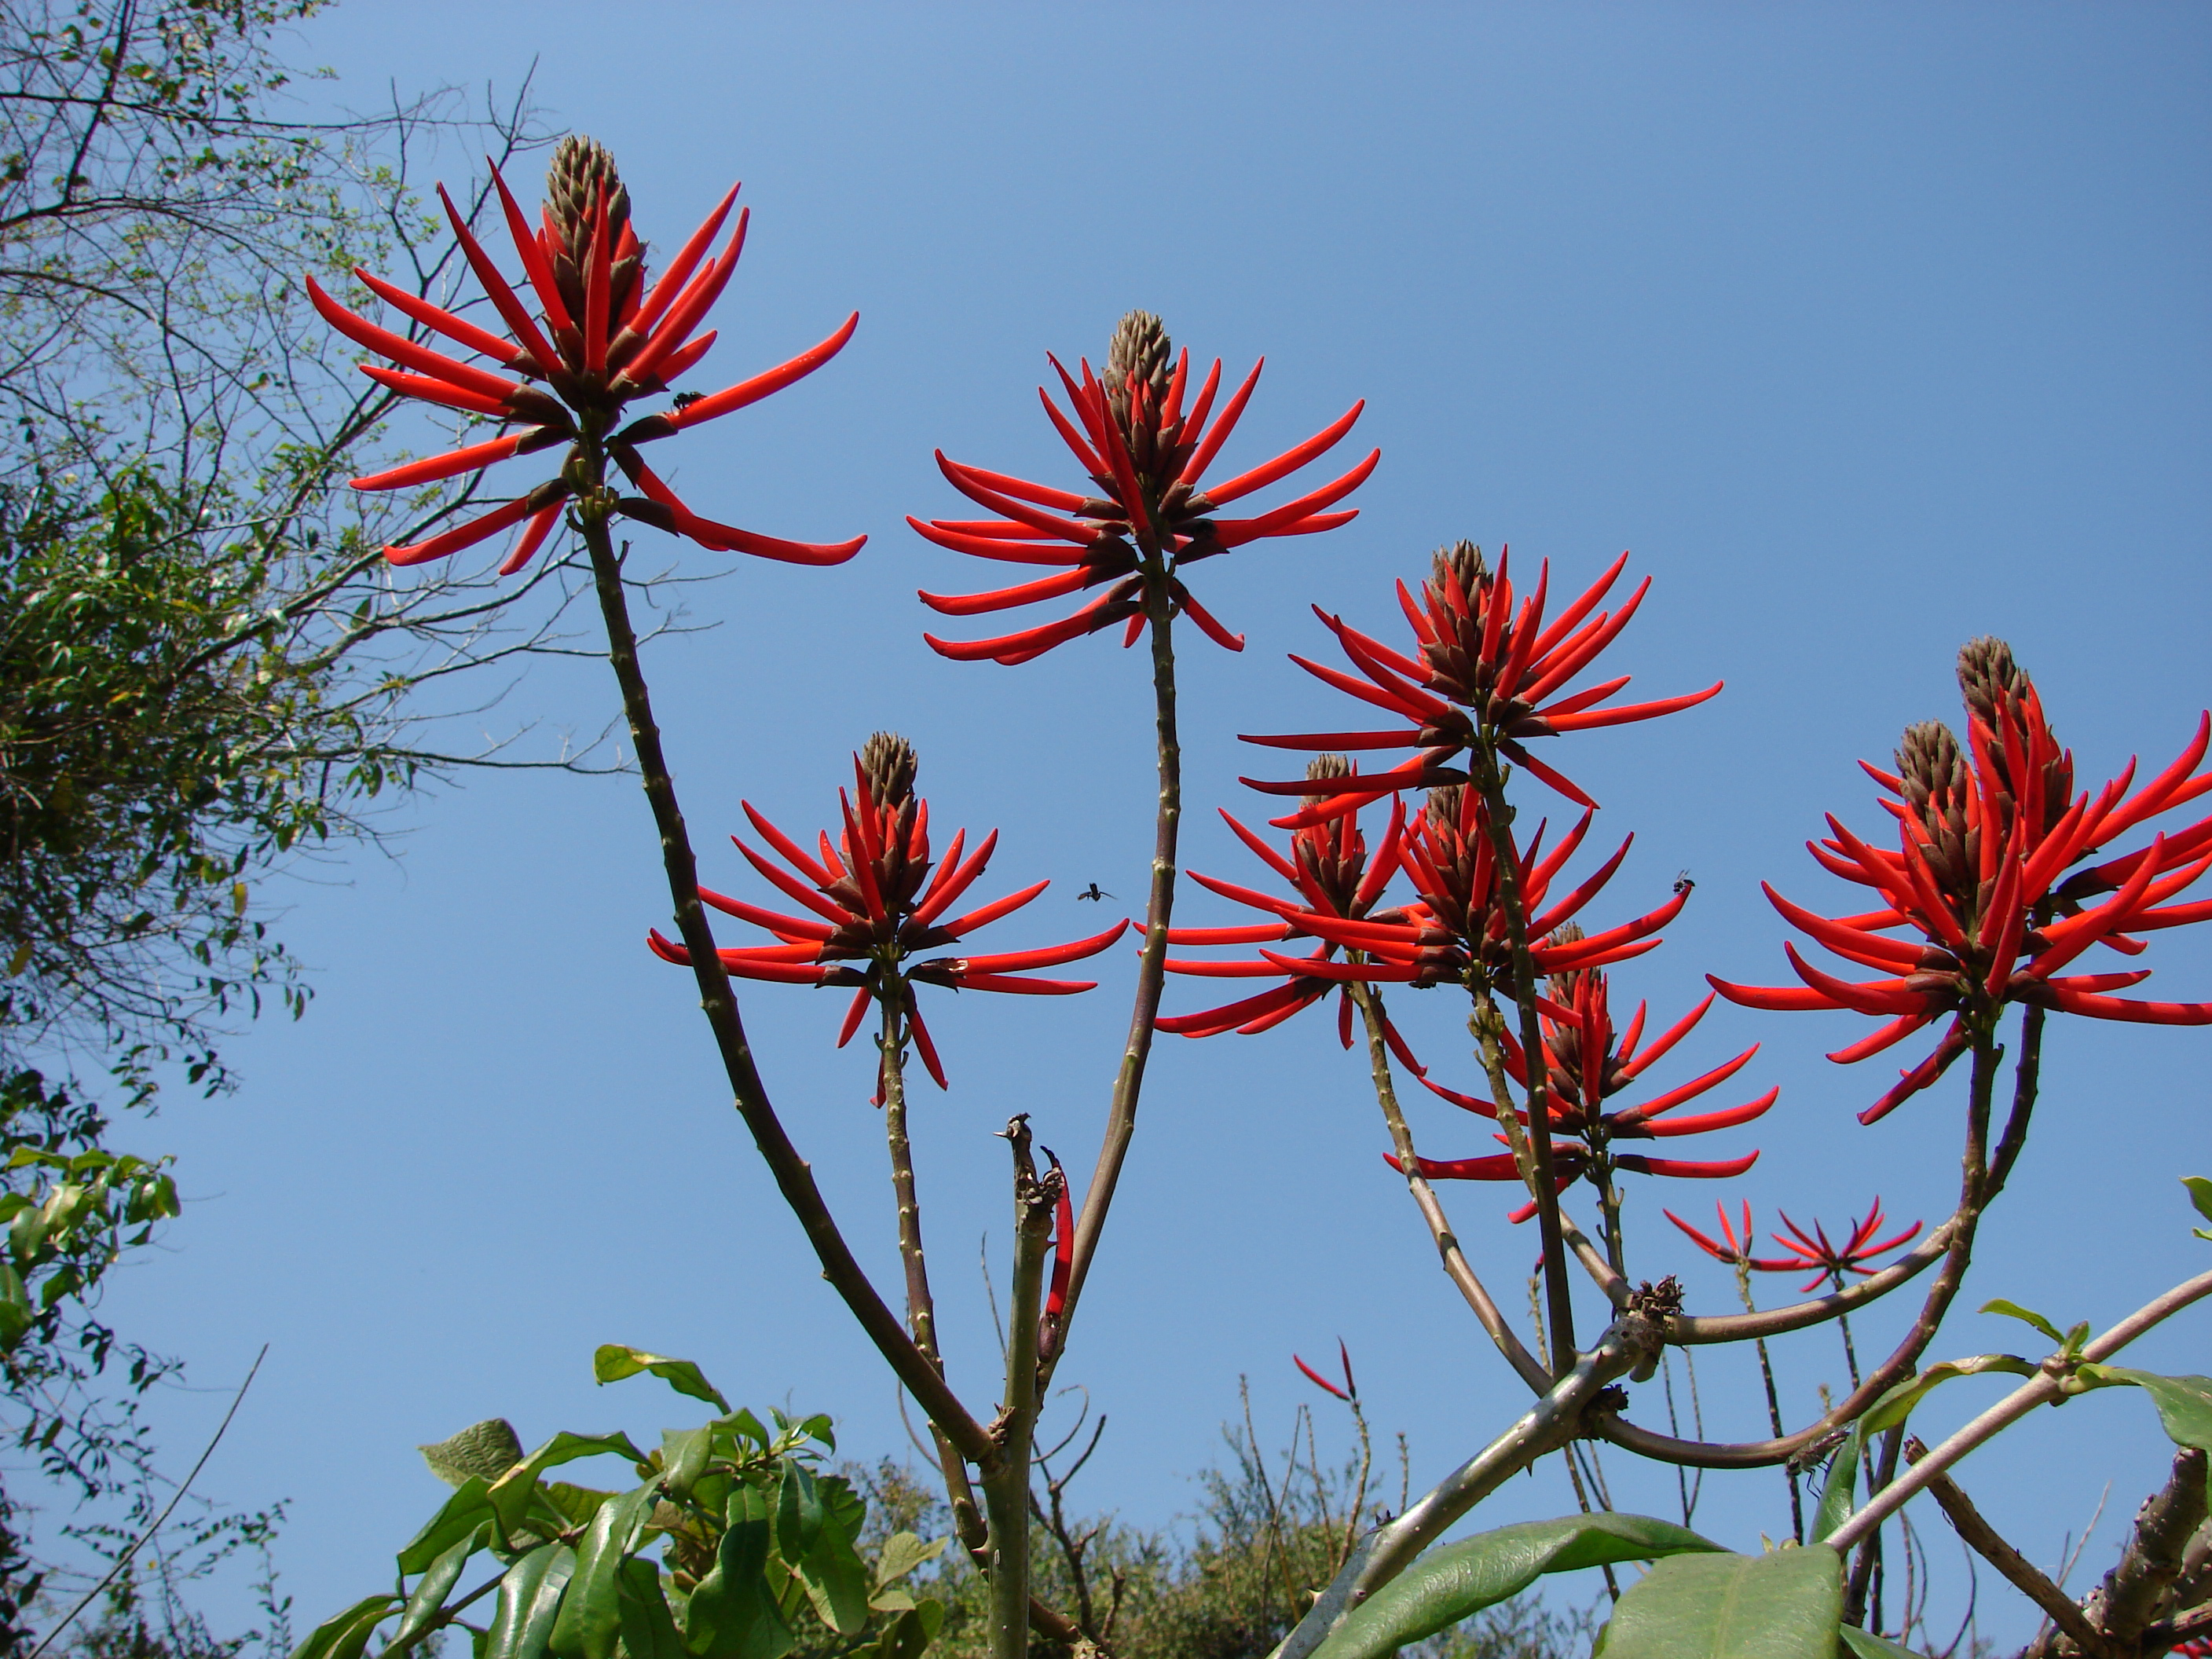 http://upload.wikimedia.org/wikipedia/commons/e/e8/Erythrina_speciosa_flower.JPG